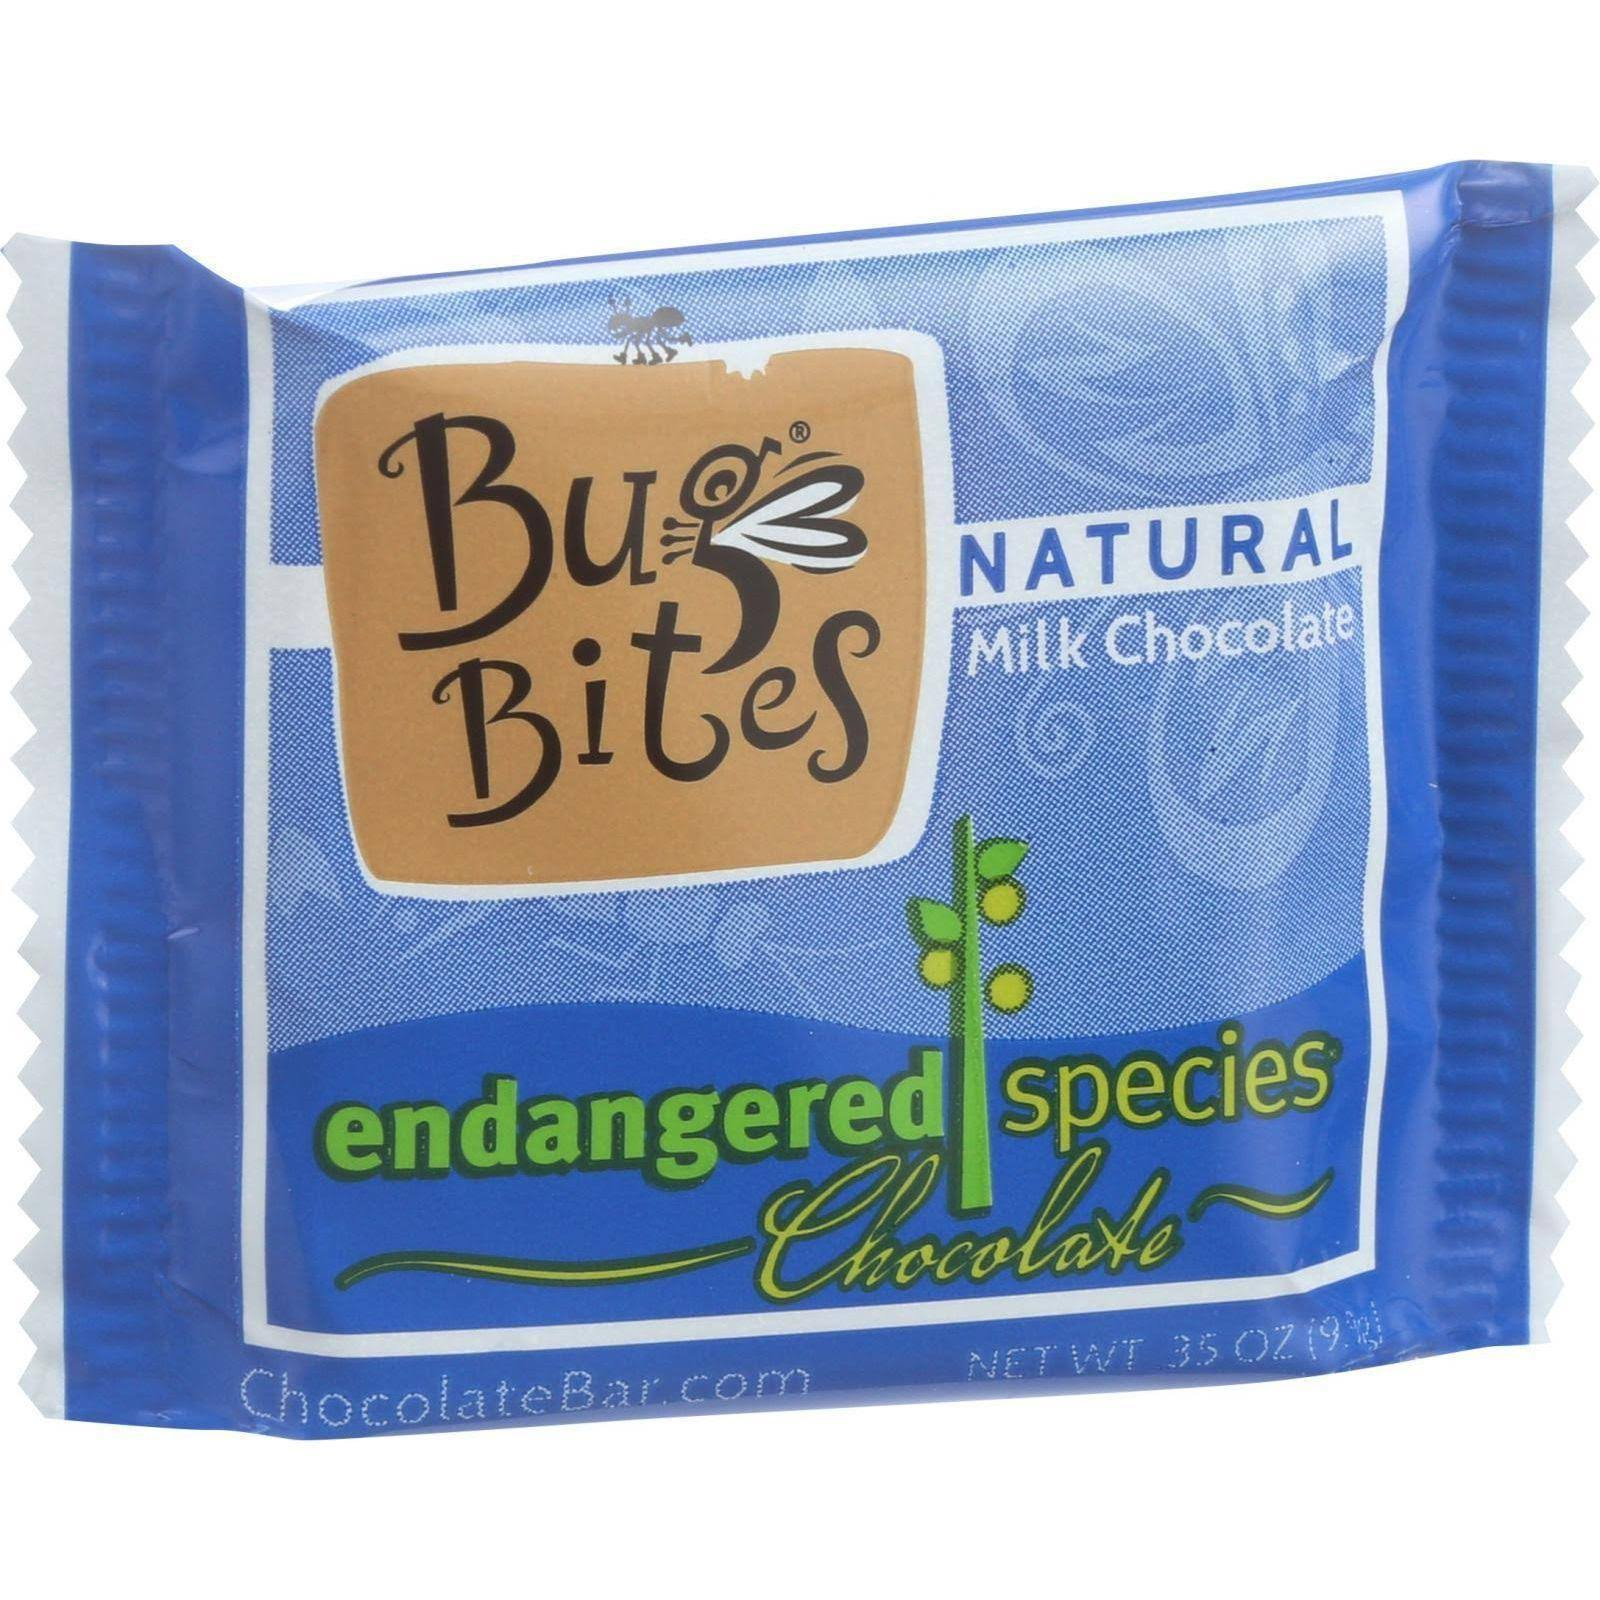 Endangered Species Bug Bites Milk Chocolate